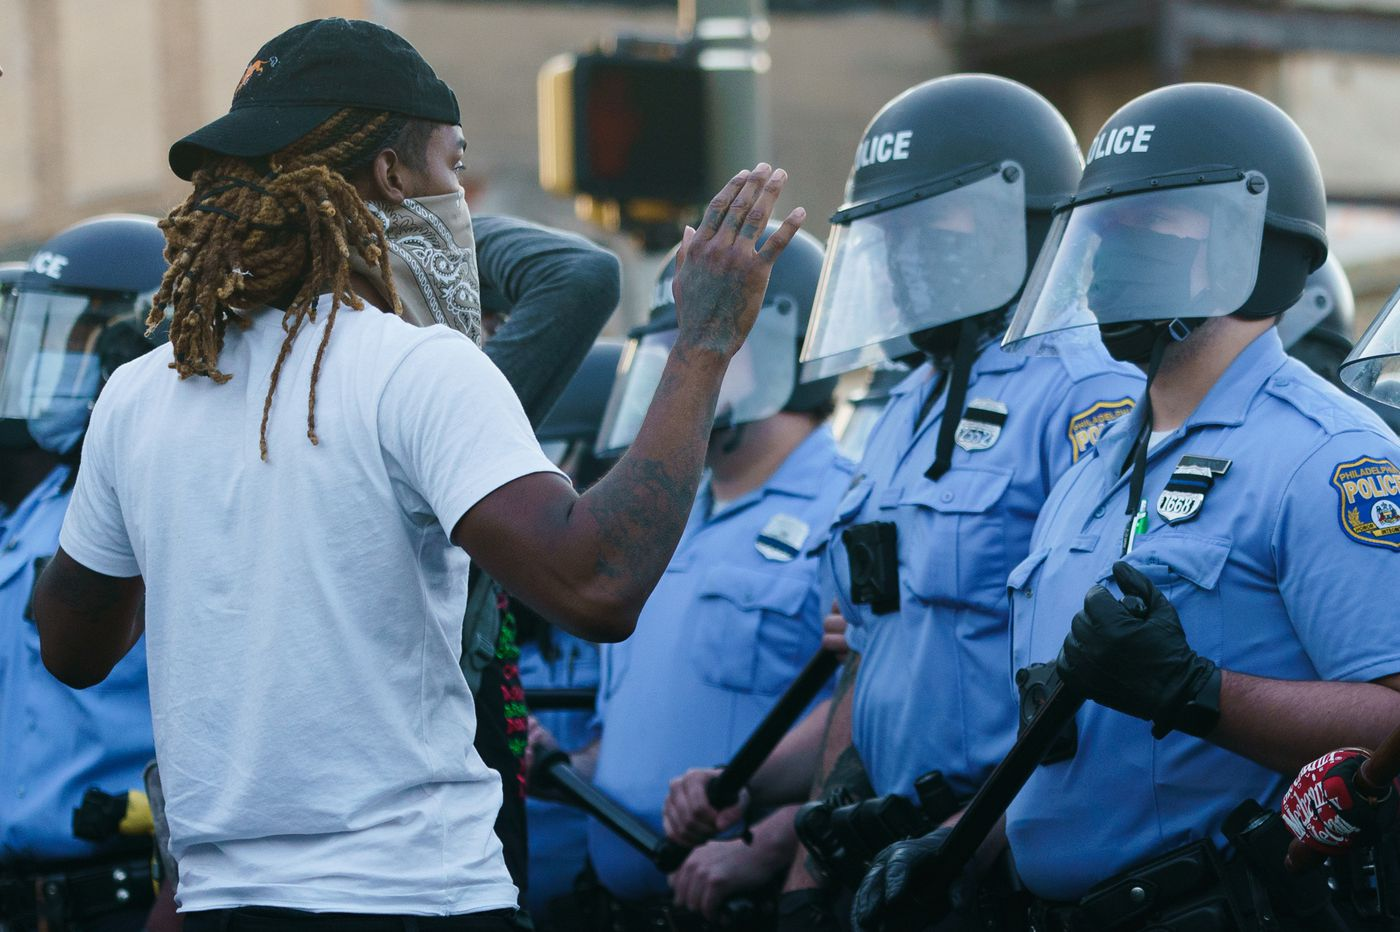 I'm a lawyer investigating Philly police's response to protests — and I need your help | Opinion